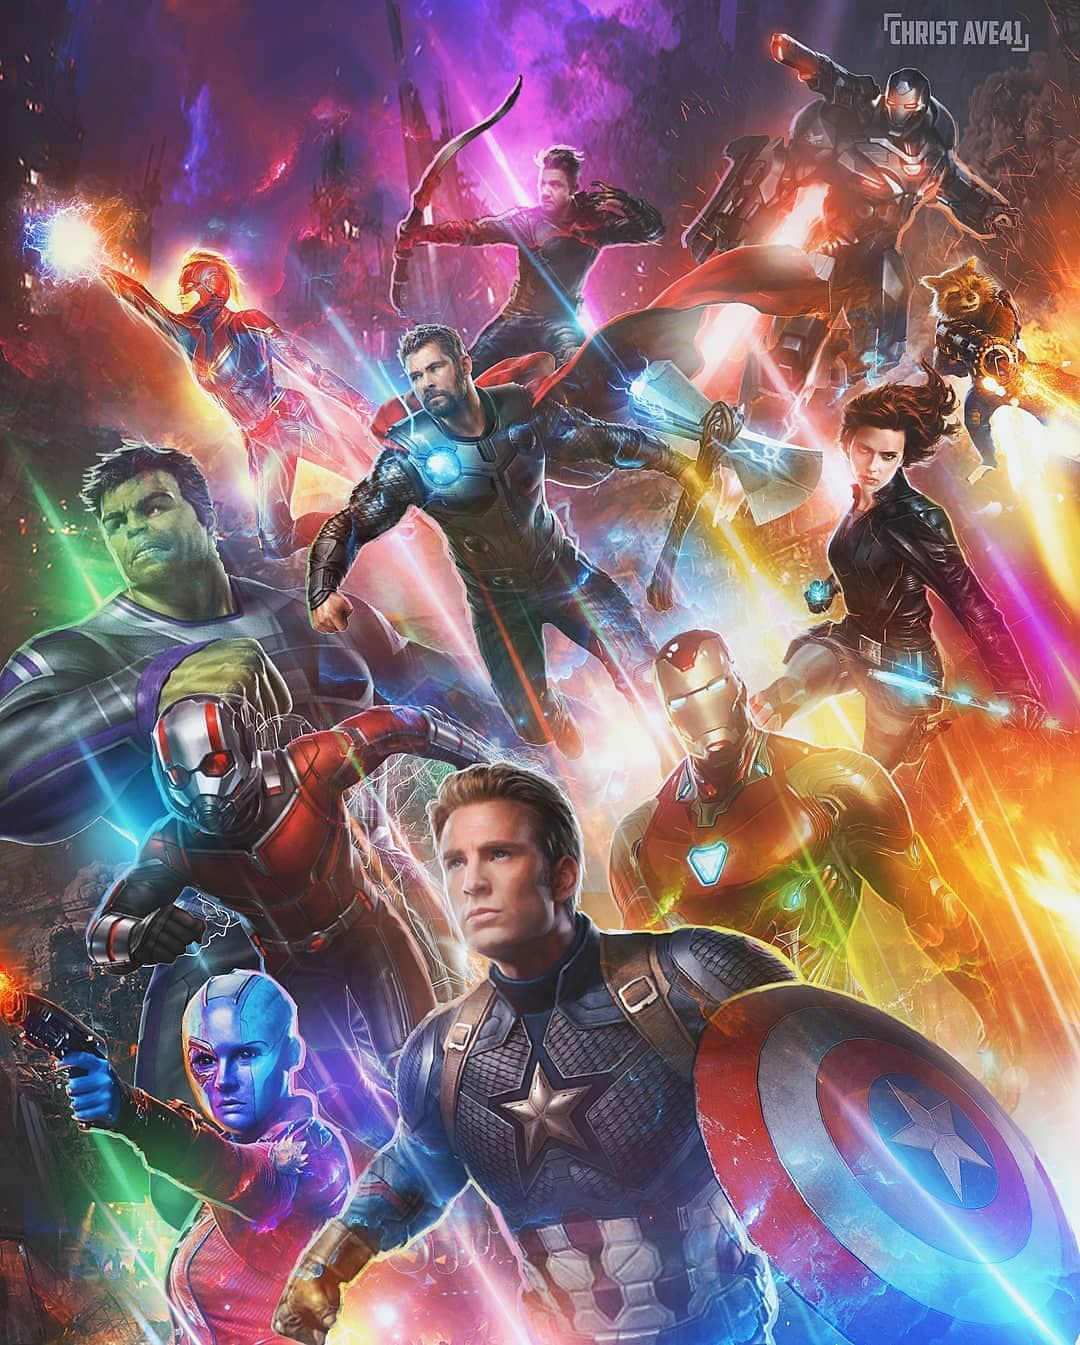 Marvel Dc Geek Marvel Avengers Marvel Movies Marvel Art Marvel Heroes Marvel Comics Marvel Wallpaper Captain Marvel Marvel Superheroe